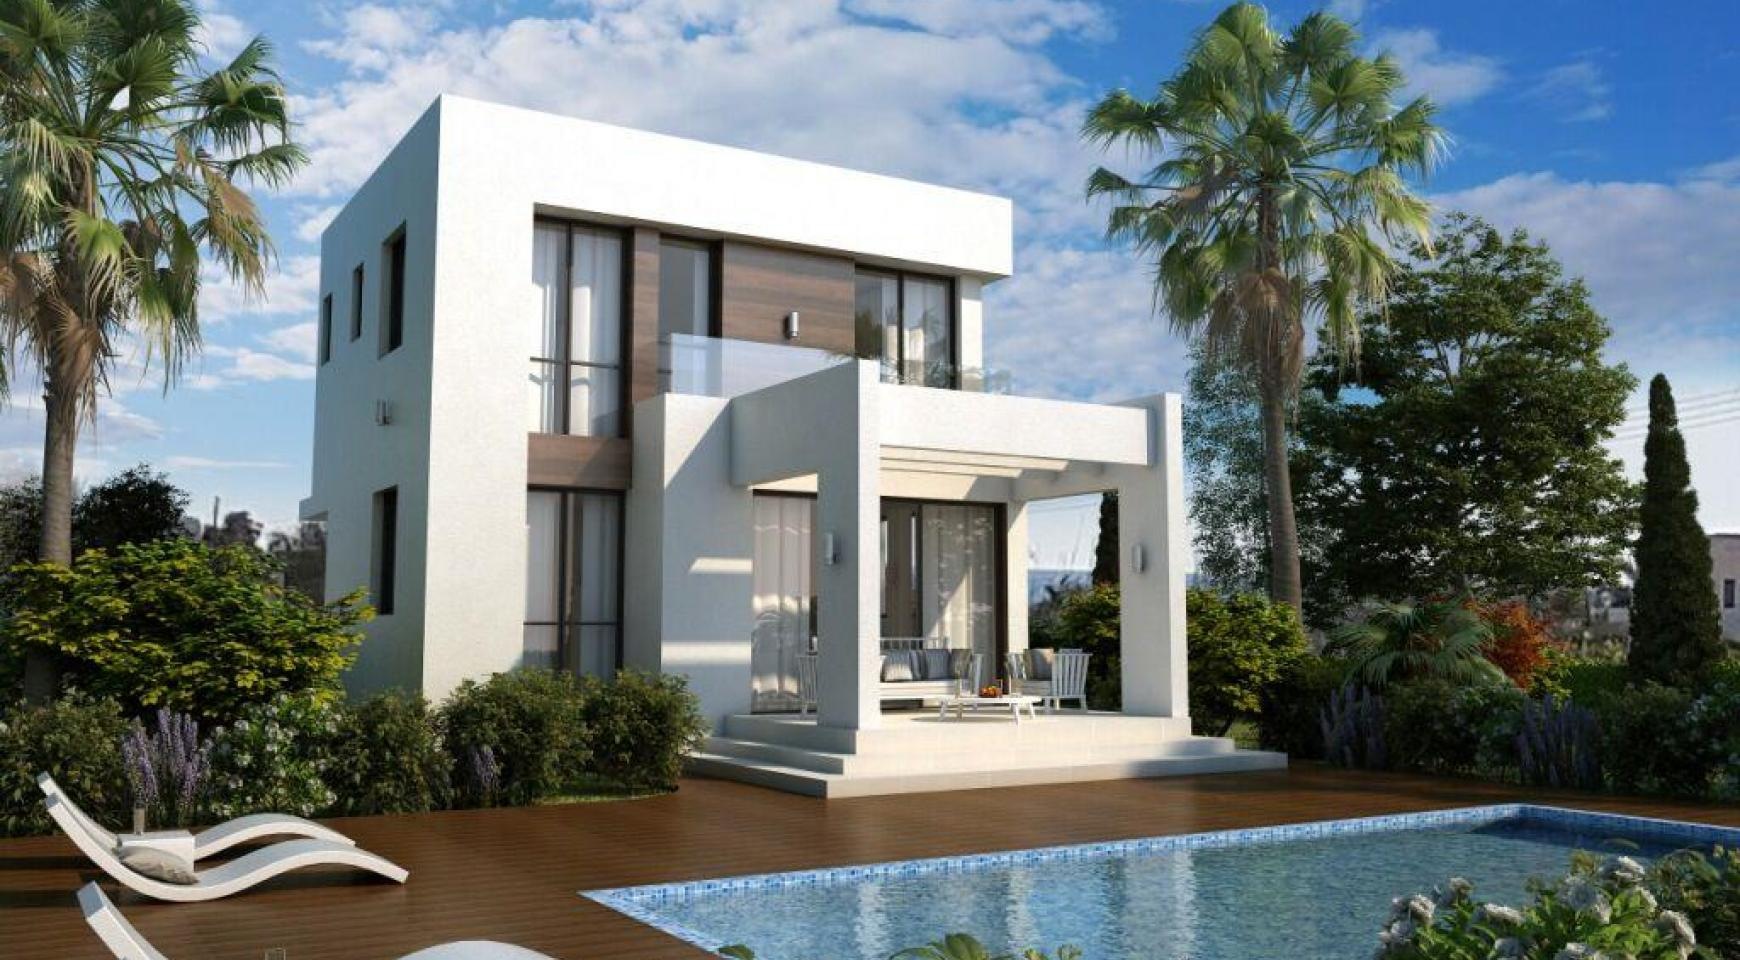 3 Bedroom Villa within a Complex near the Beach - 11